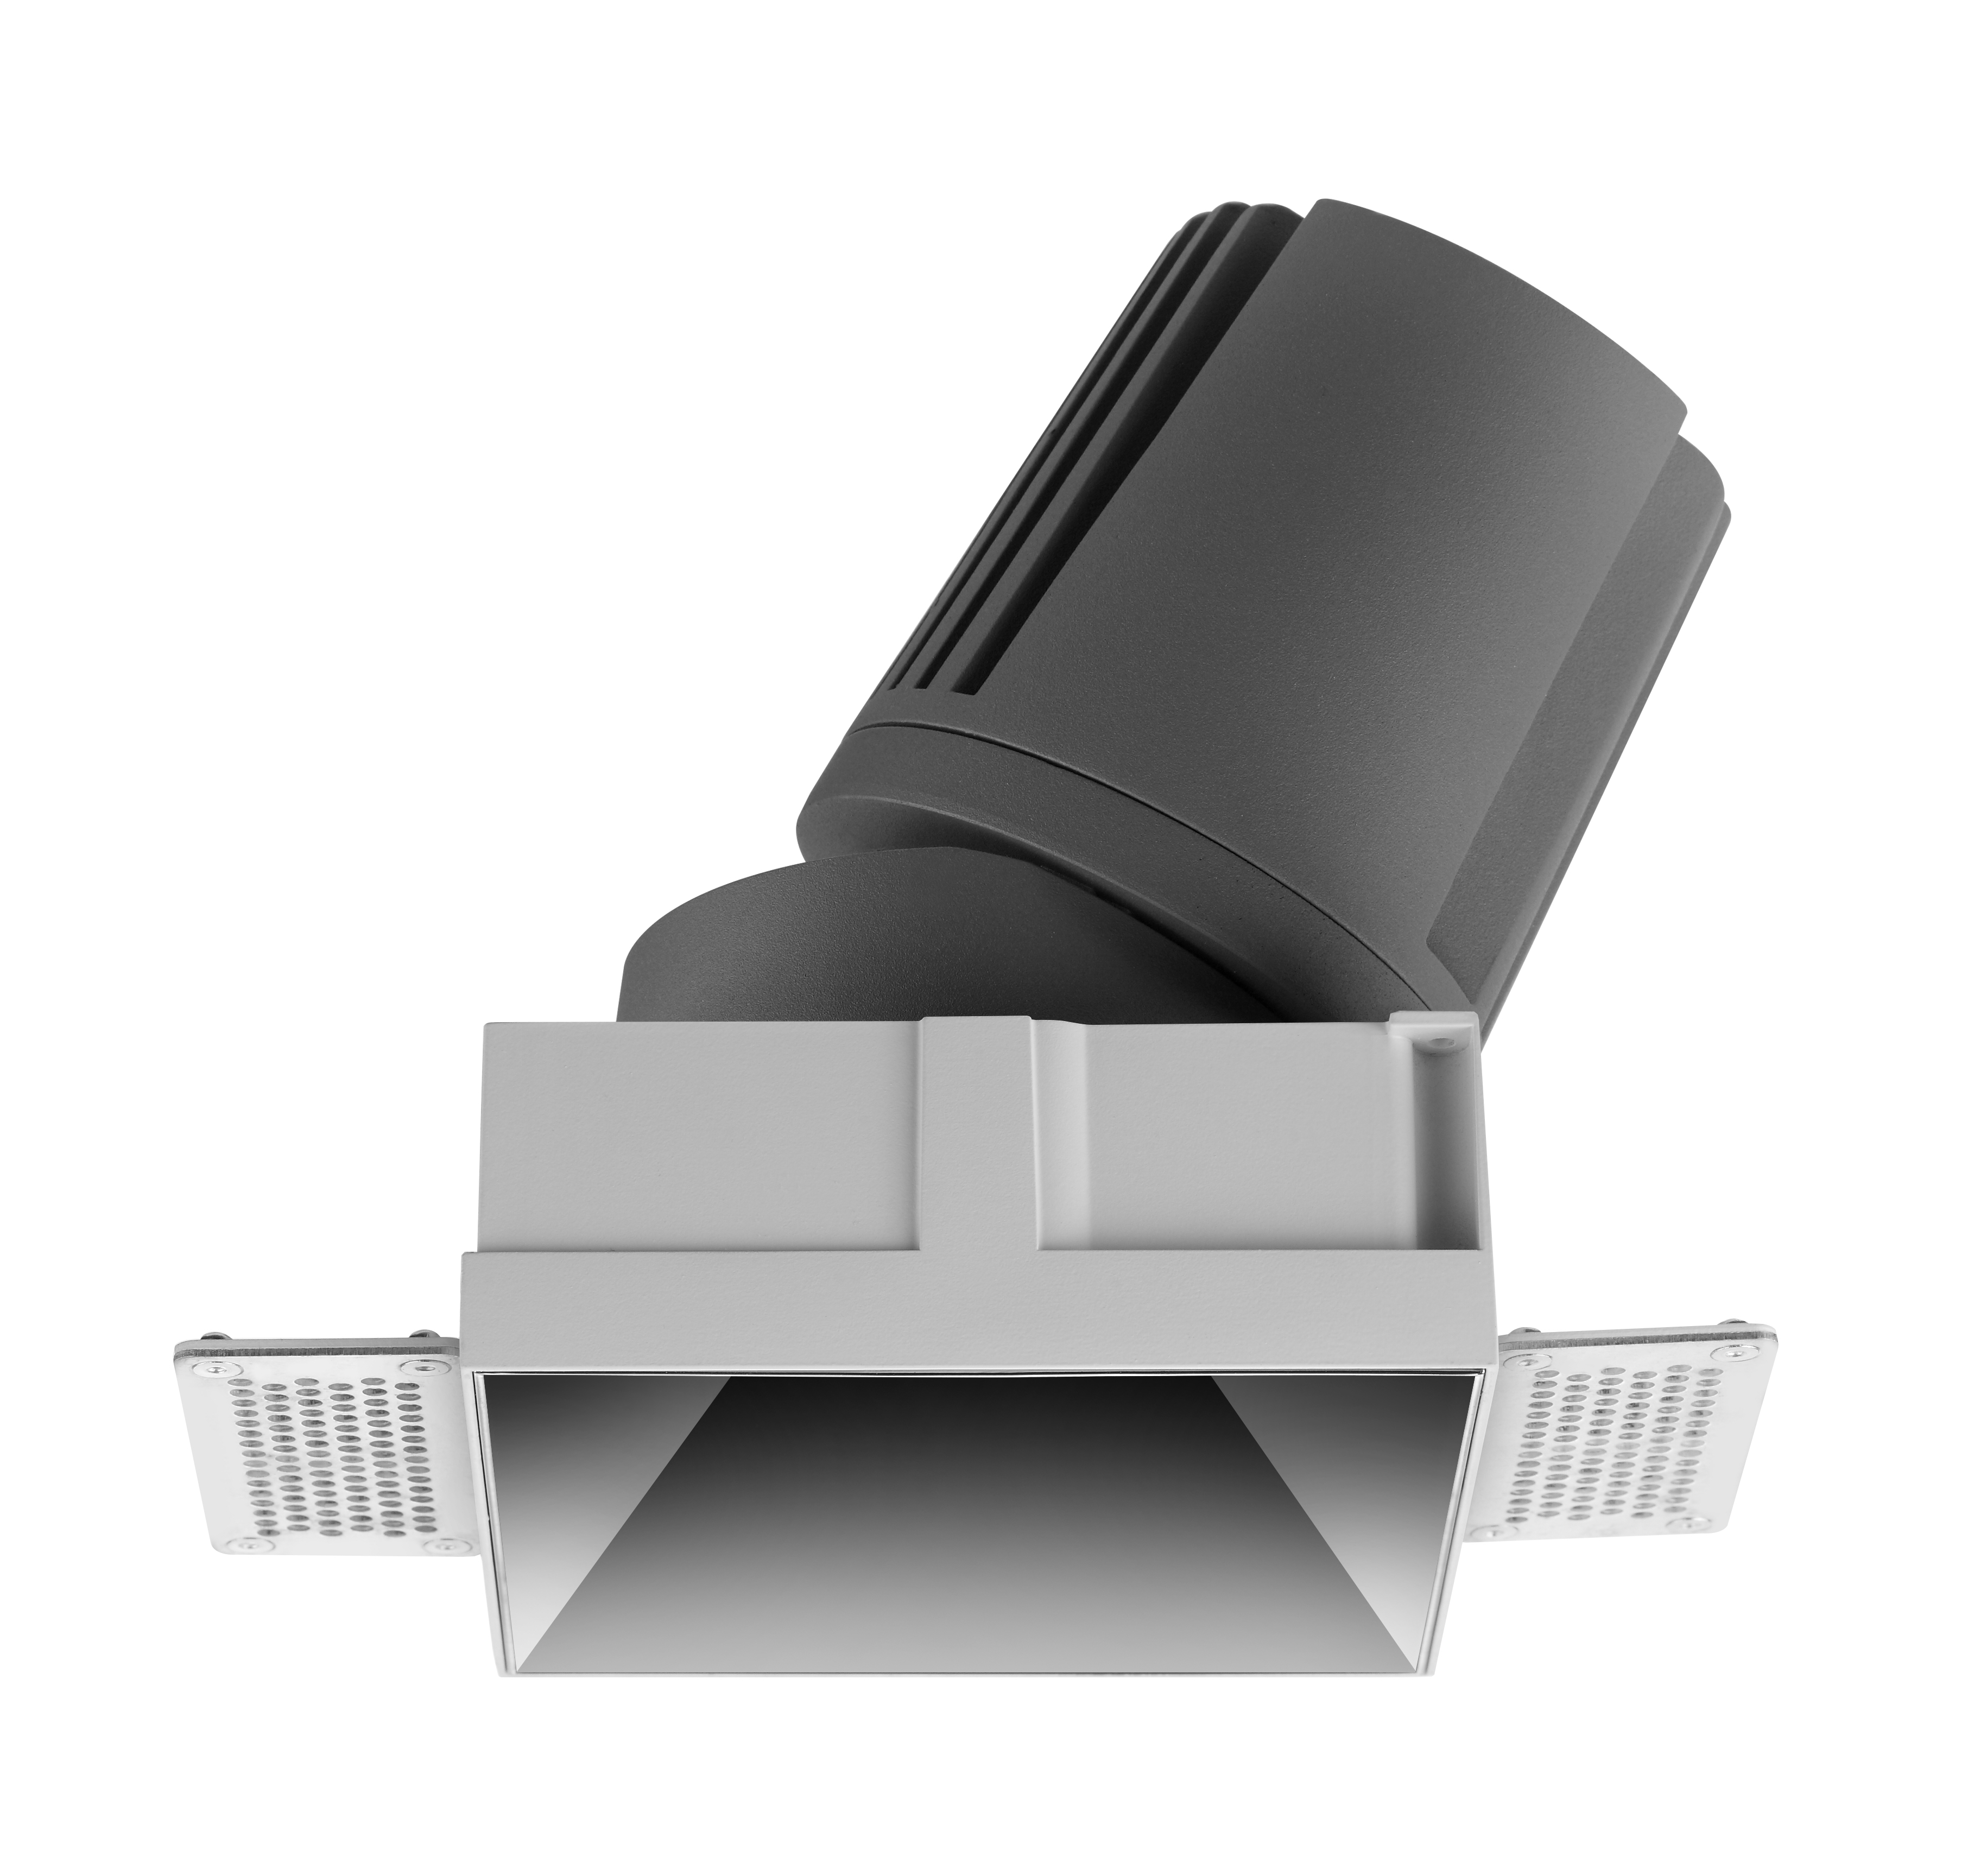 Square Adjustable Trimless Led Downlight AW10096